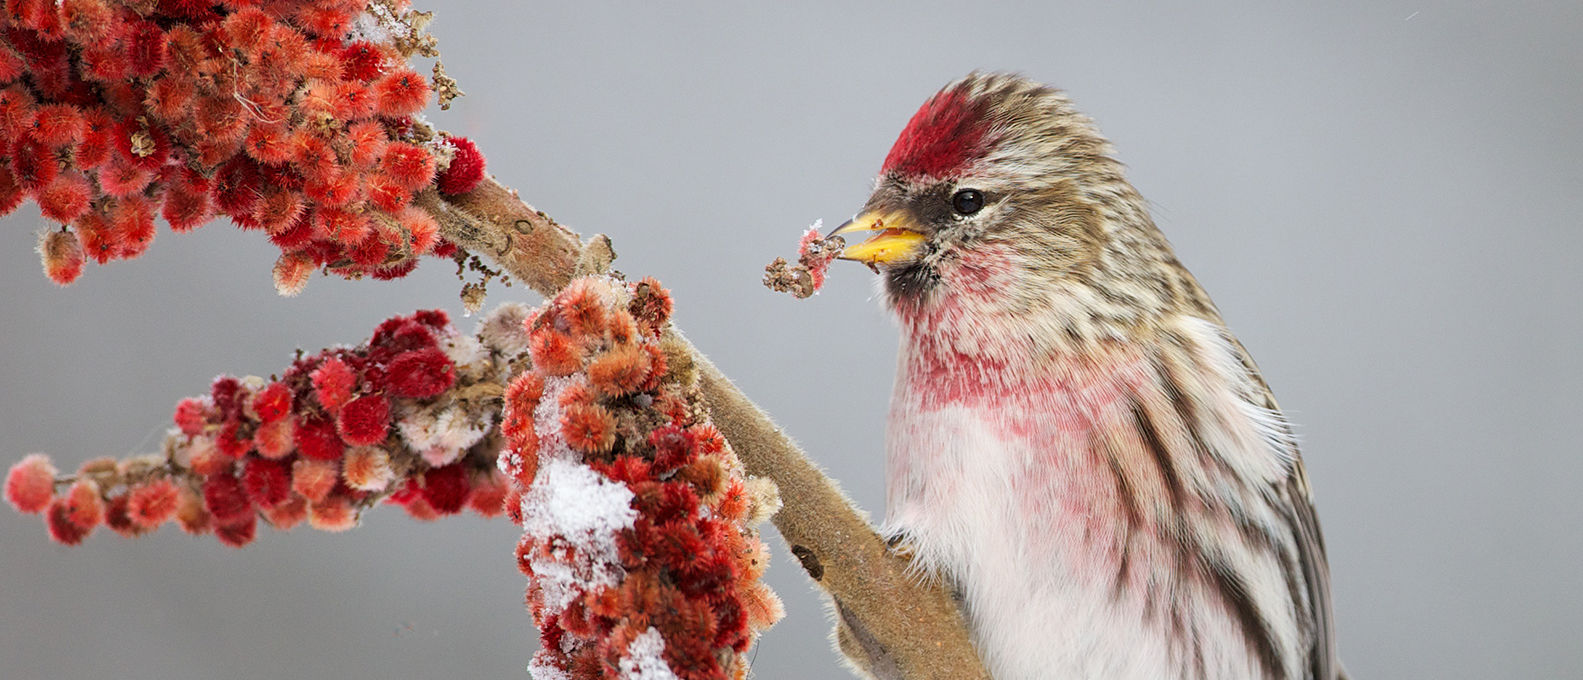 Common redpoll eating staghorn sumac fruit in winter